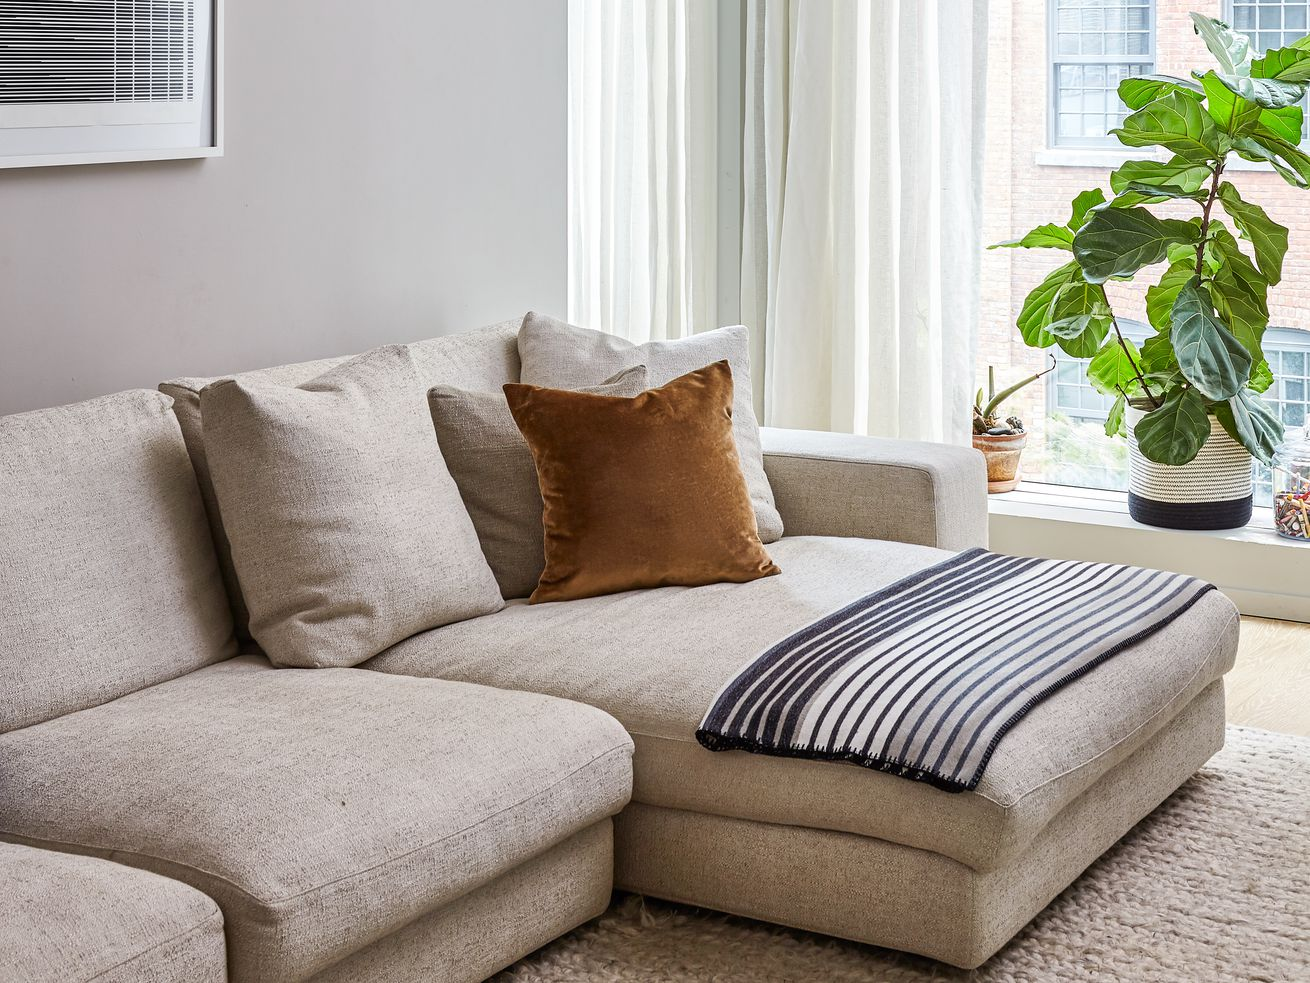 Neutral decor ideas to steal from a plant-filled Brooklyn home